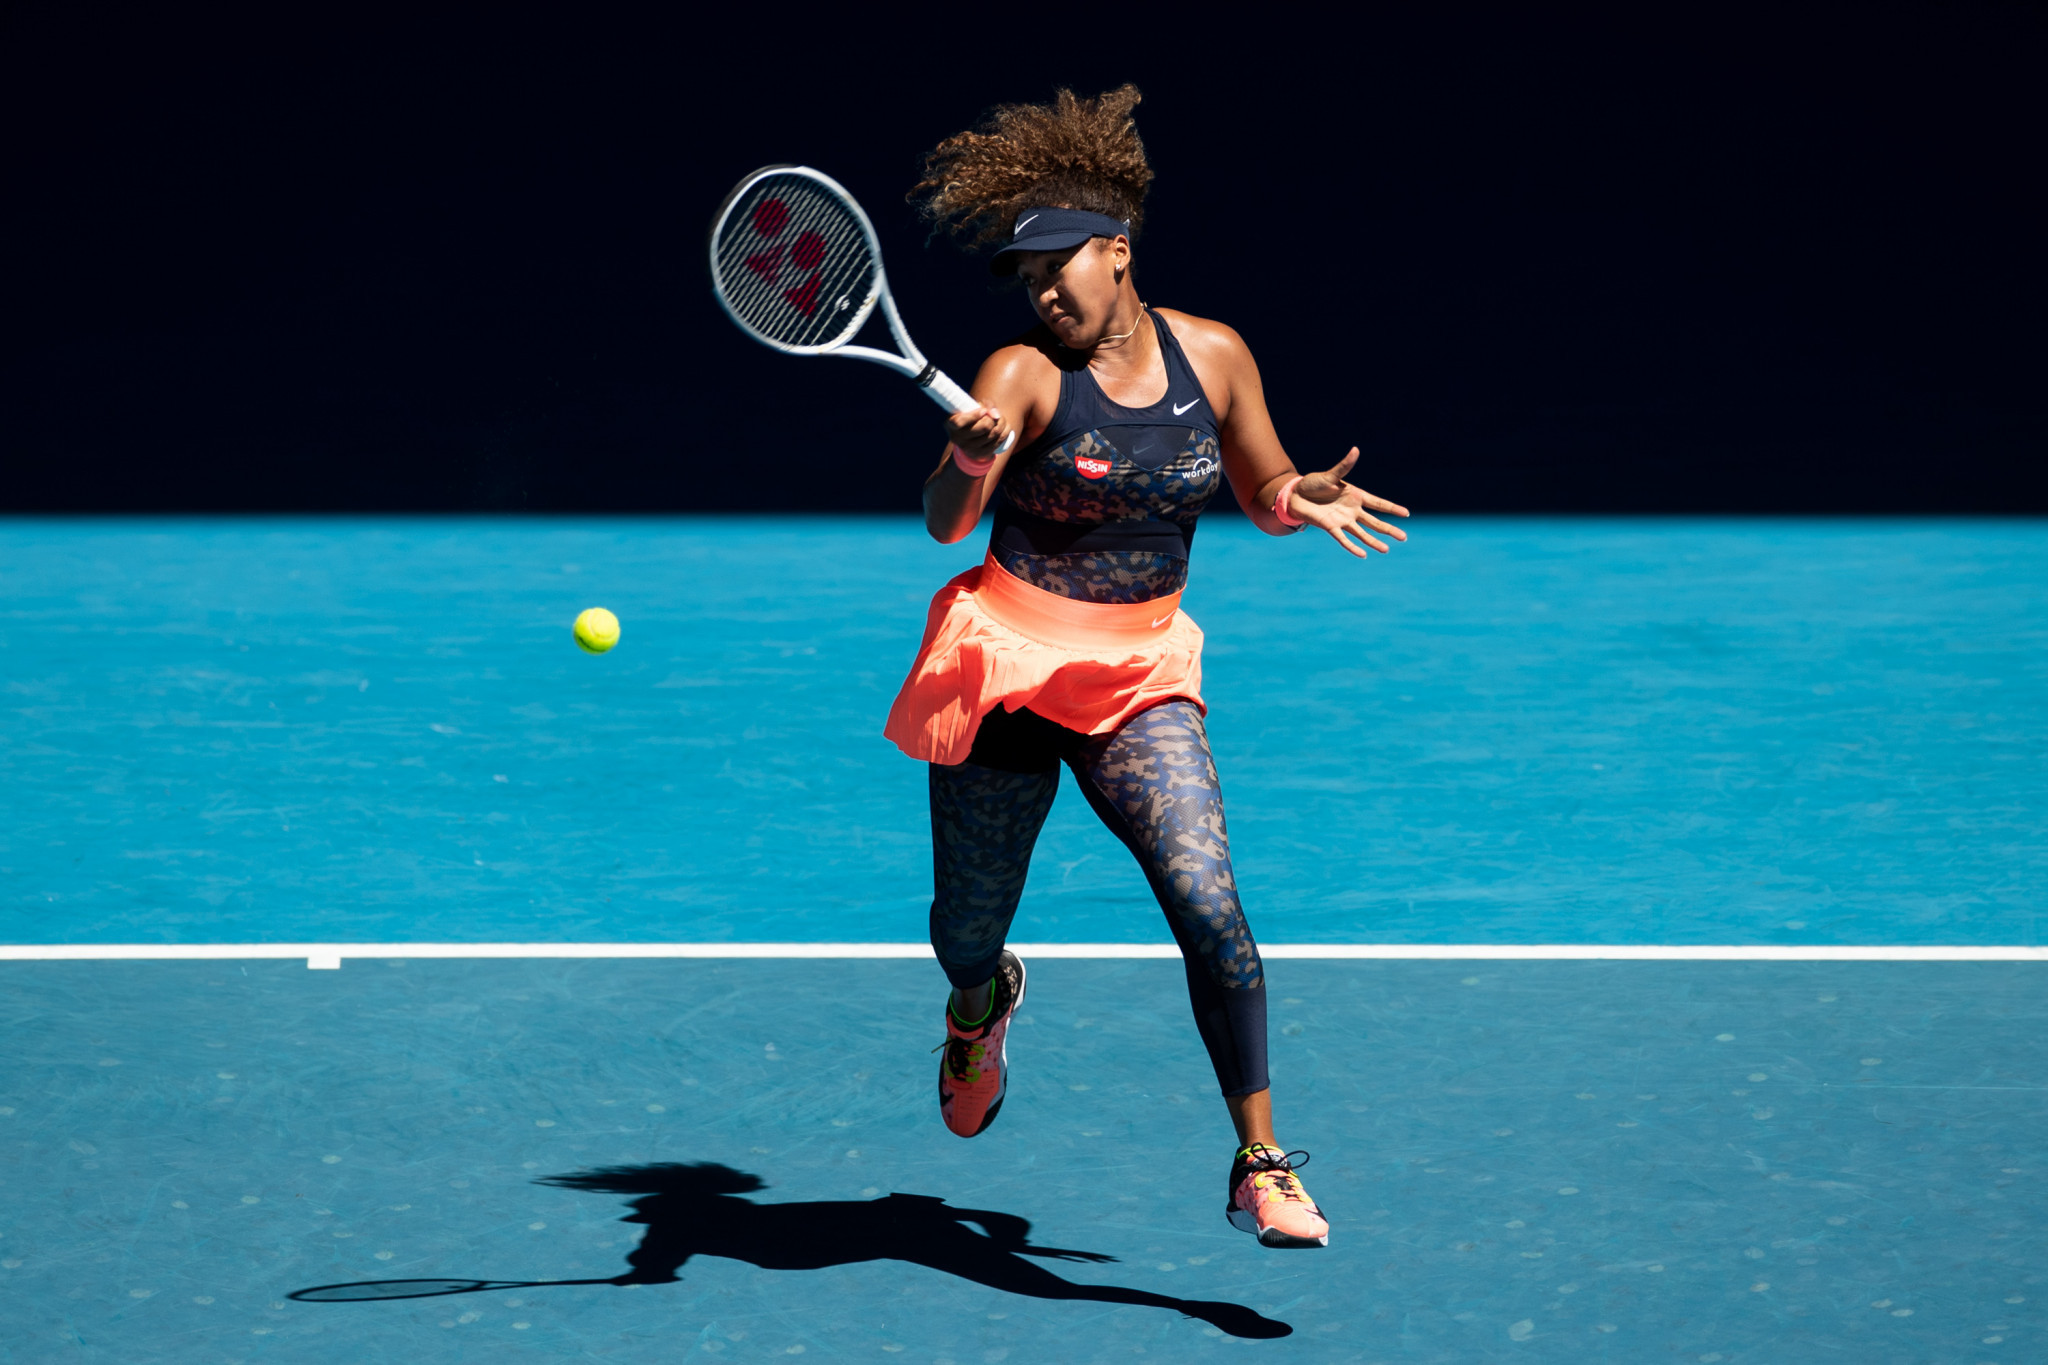 Osaka overcomes Williams to reach Australian Open final